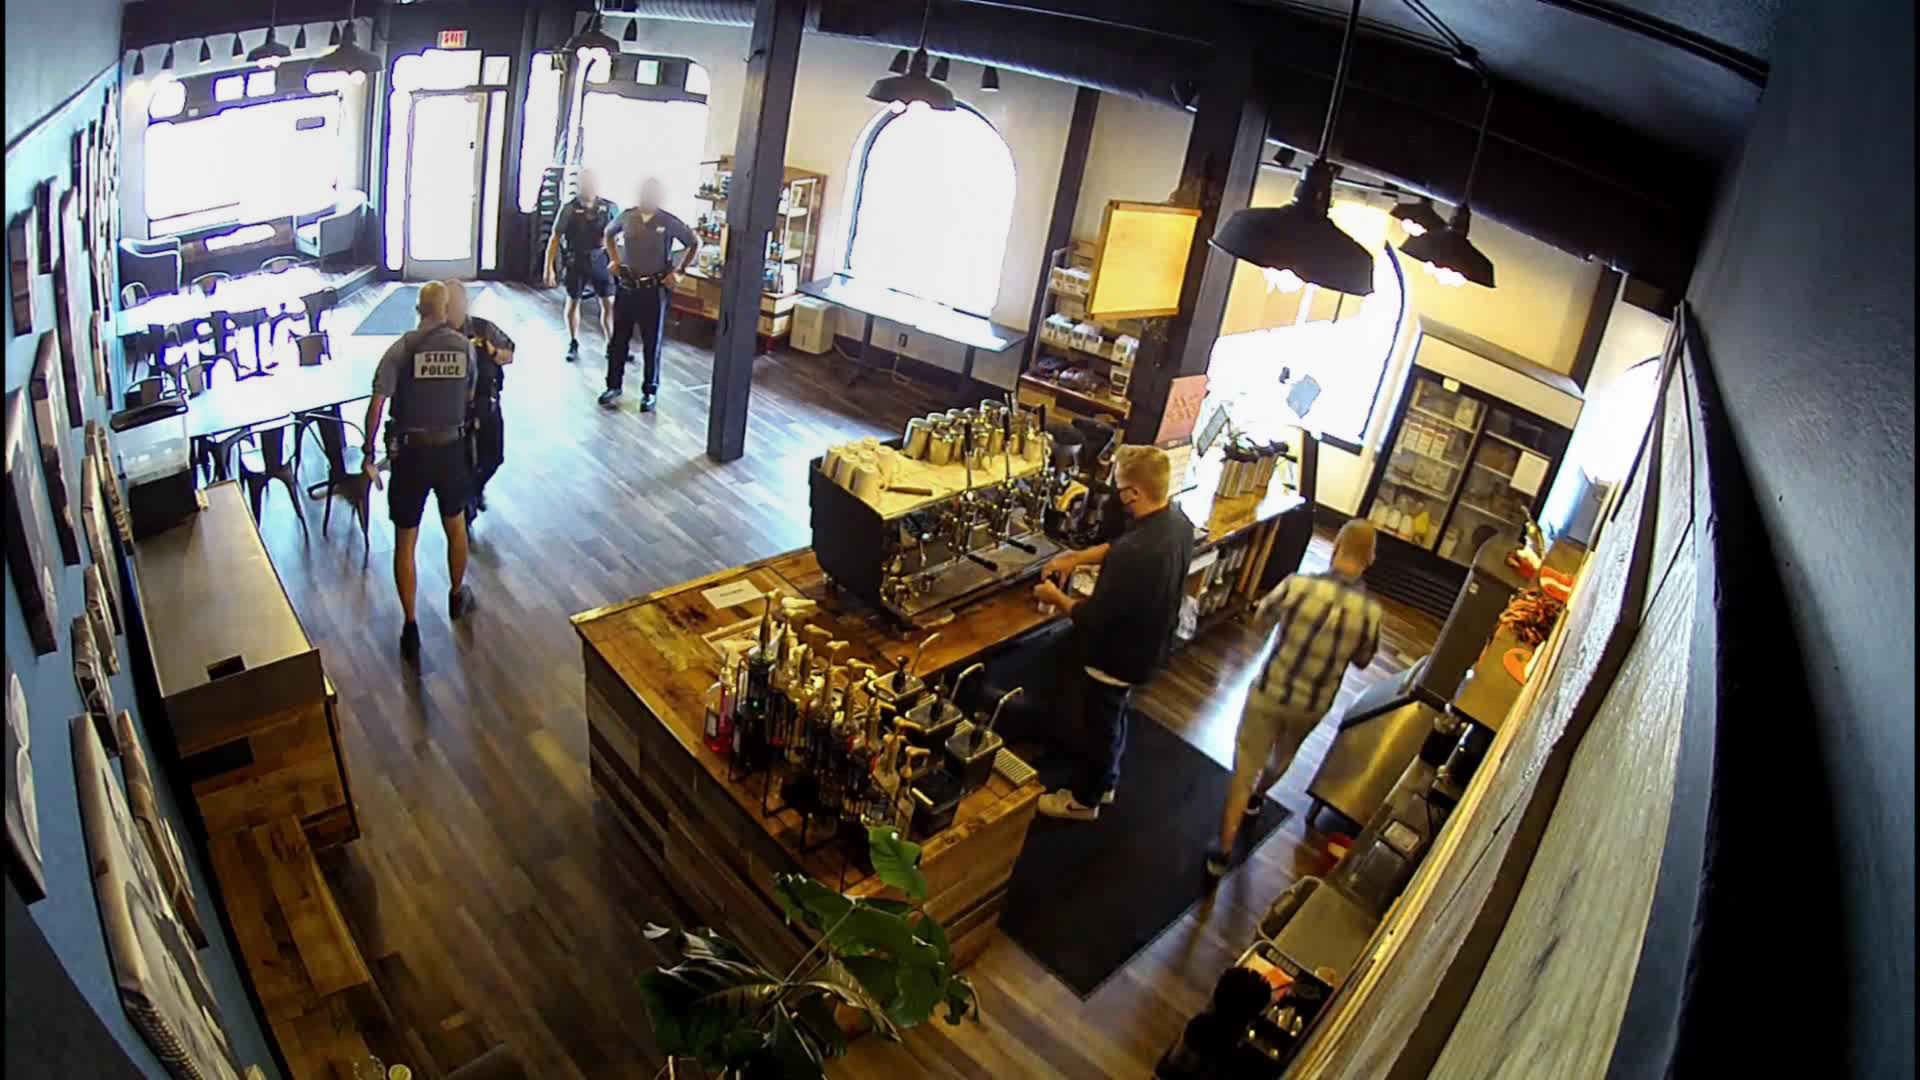 Oregon state trooper put on leave after defying mask mandate in coffee shop